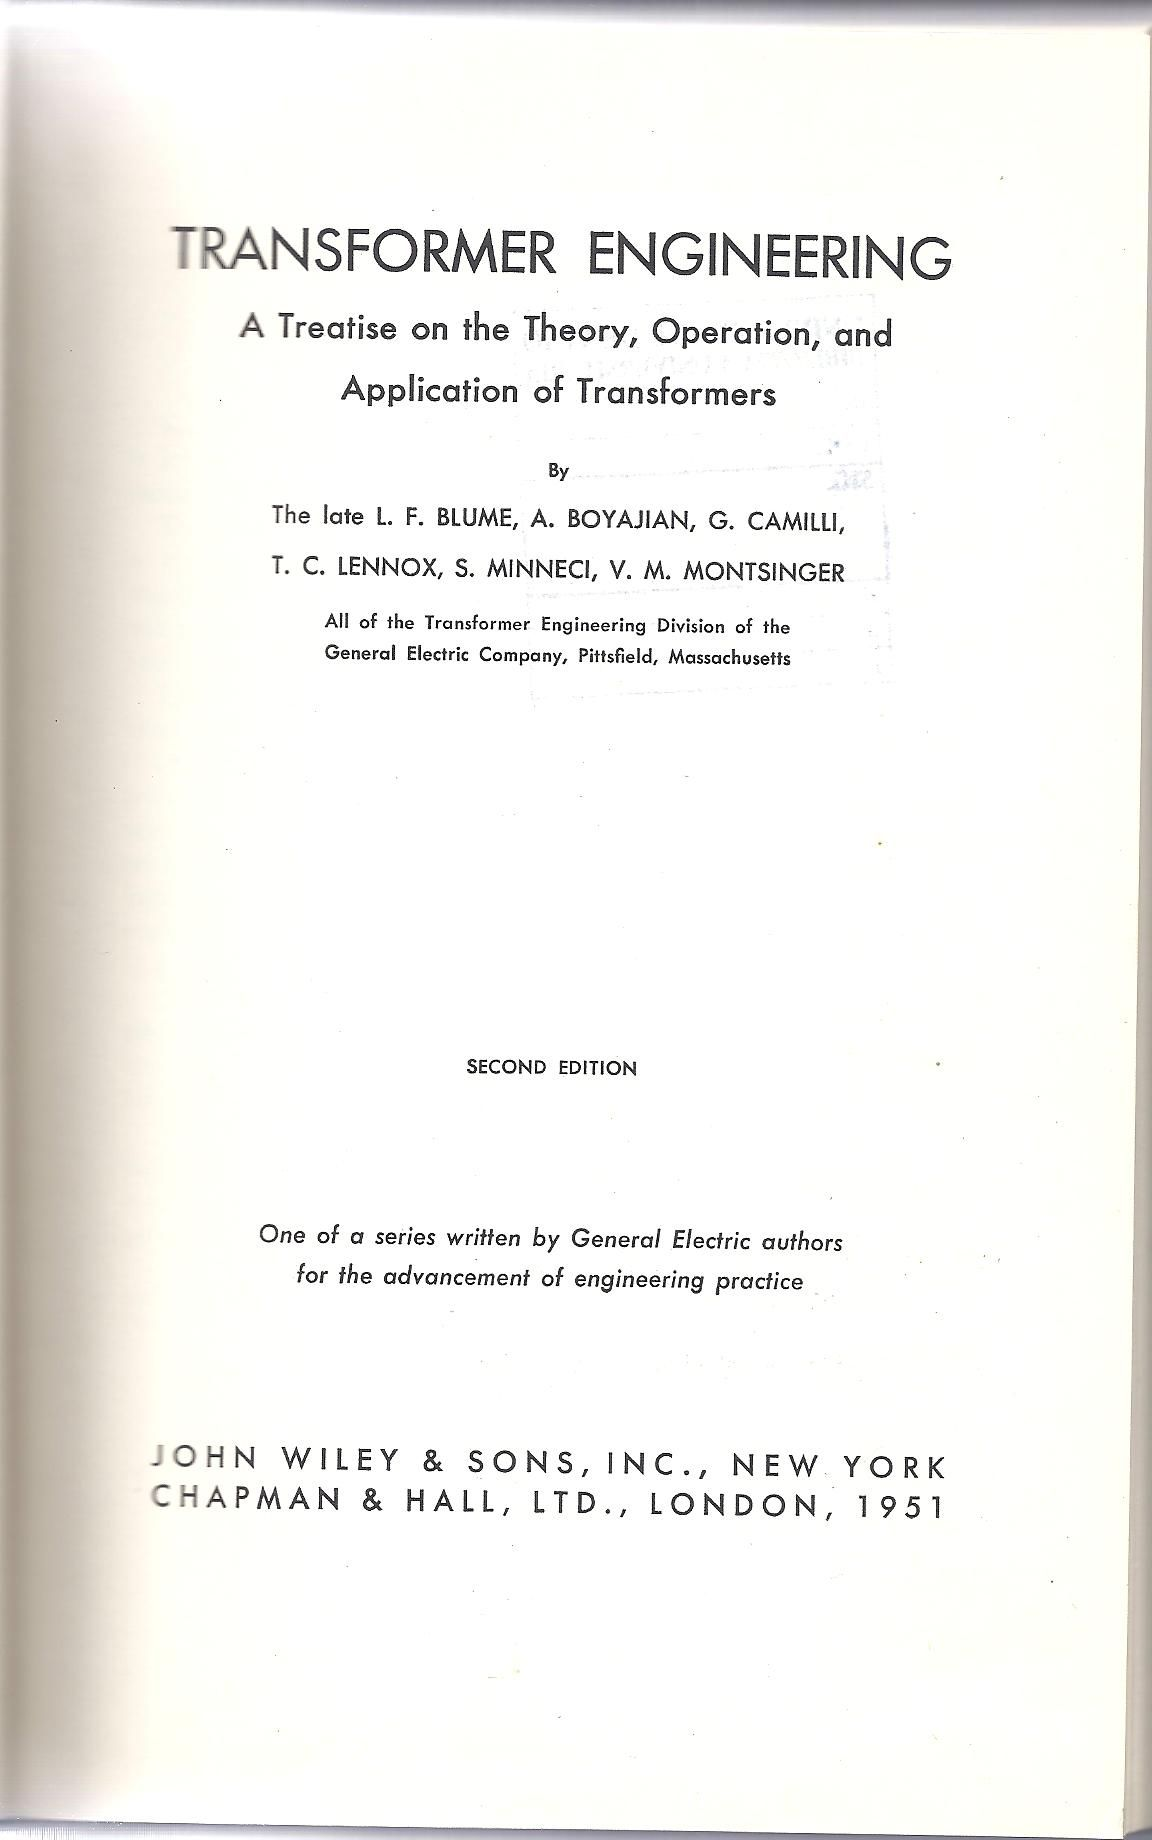 Transformer engineering : a treatise on the theory, operation, and application of transformers / by L. F. Blume ... [et al.]